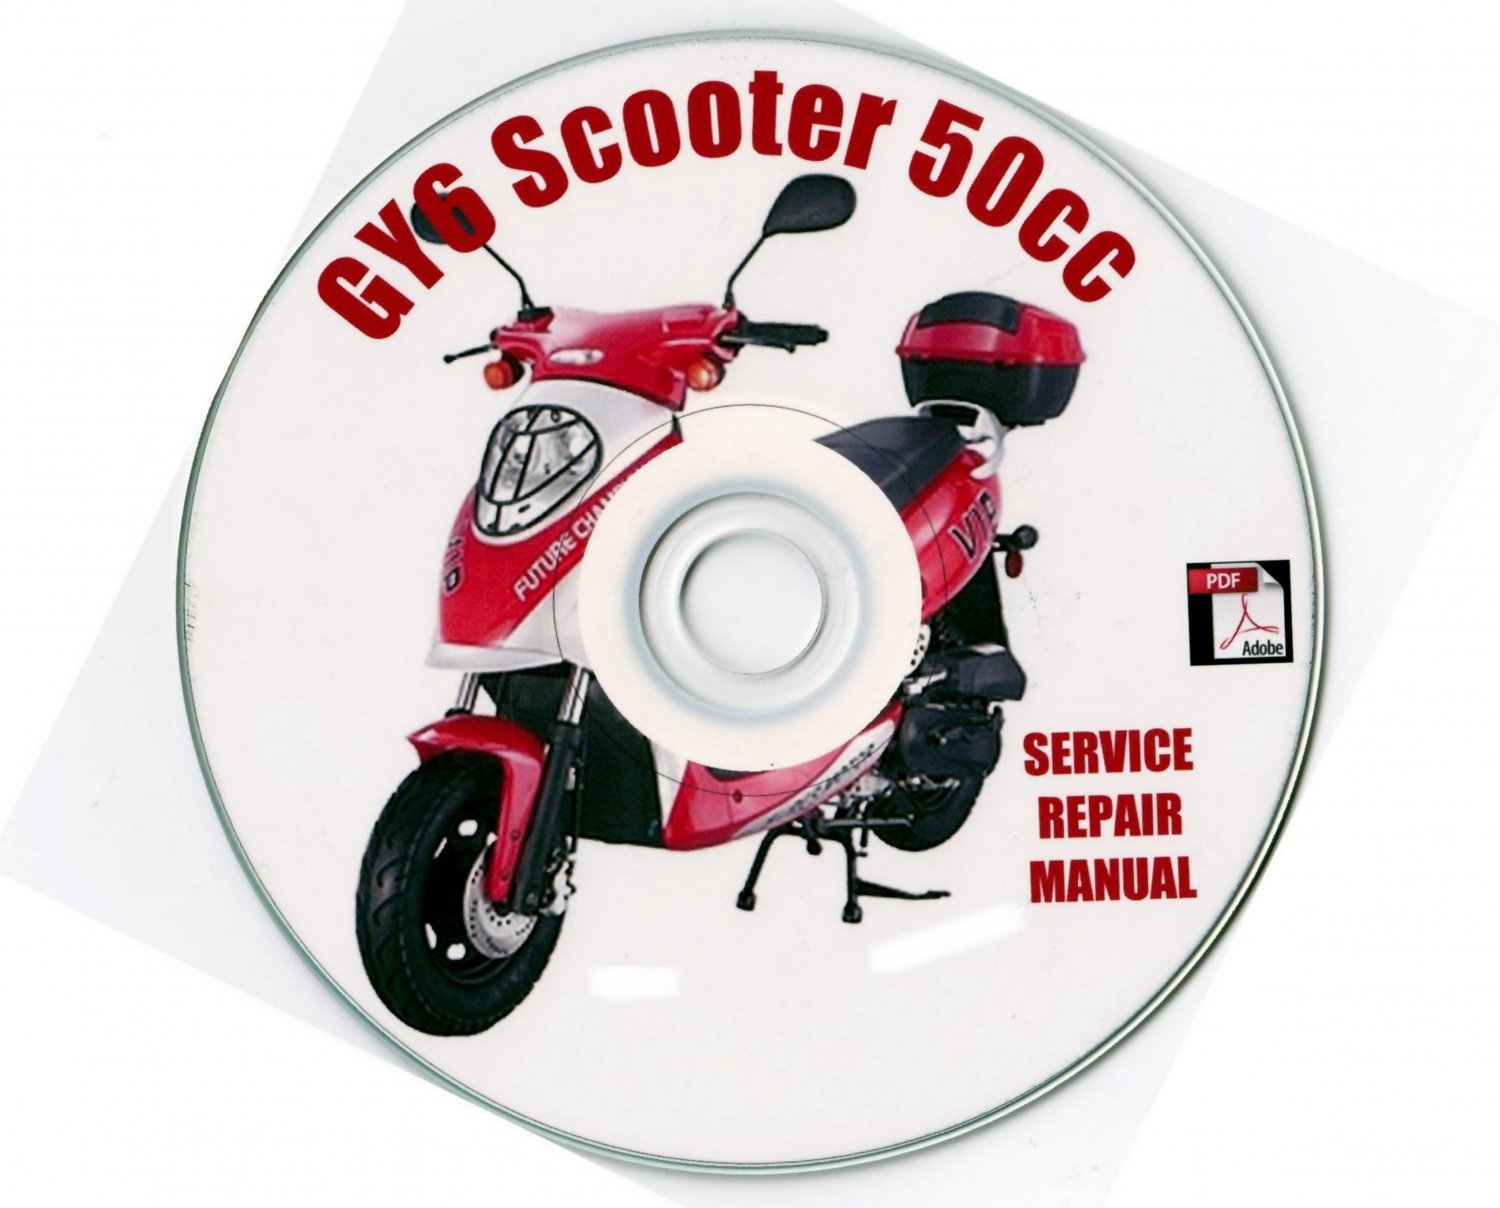 hight resolution of 50b kasea scooter manual divinemettacine